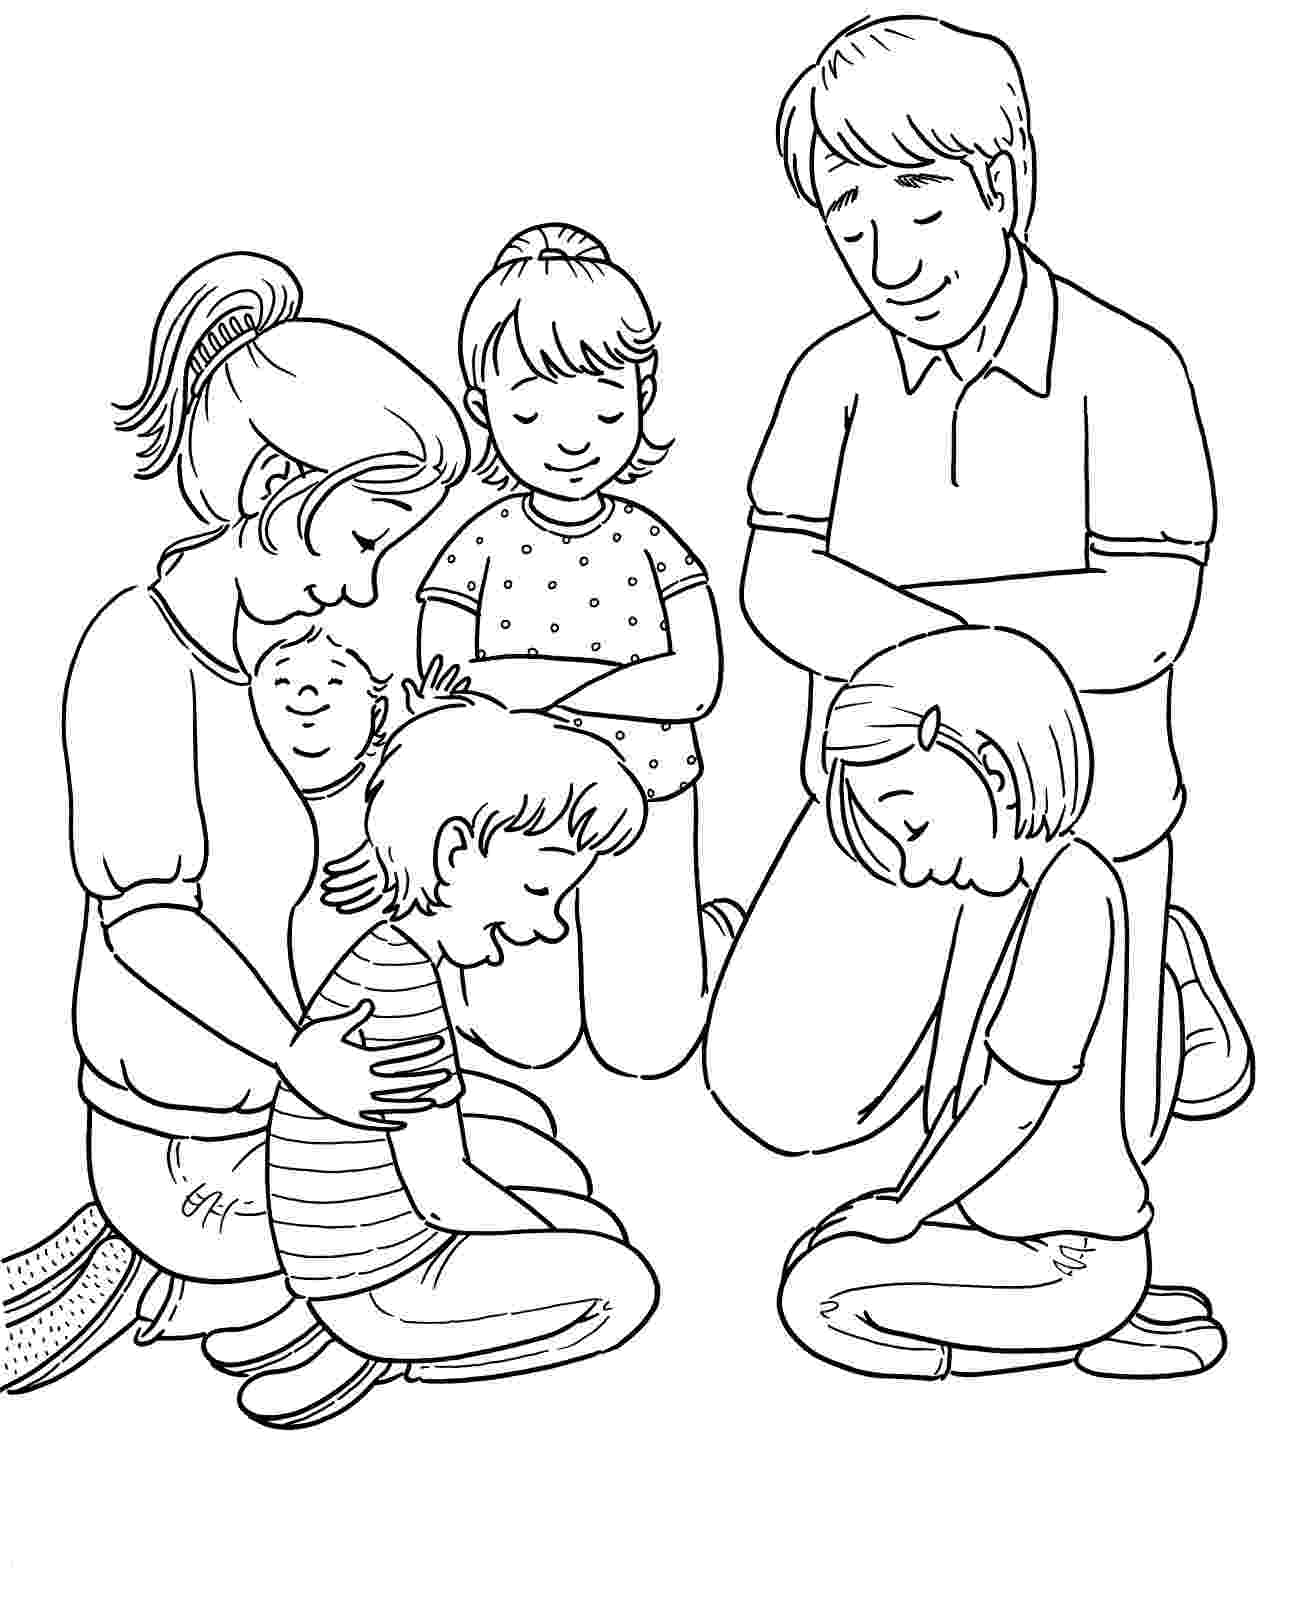 prayer coloring pages praying coloring pages preschool top kids corner pages coloring prayer